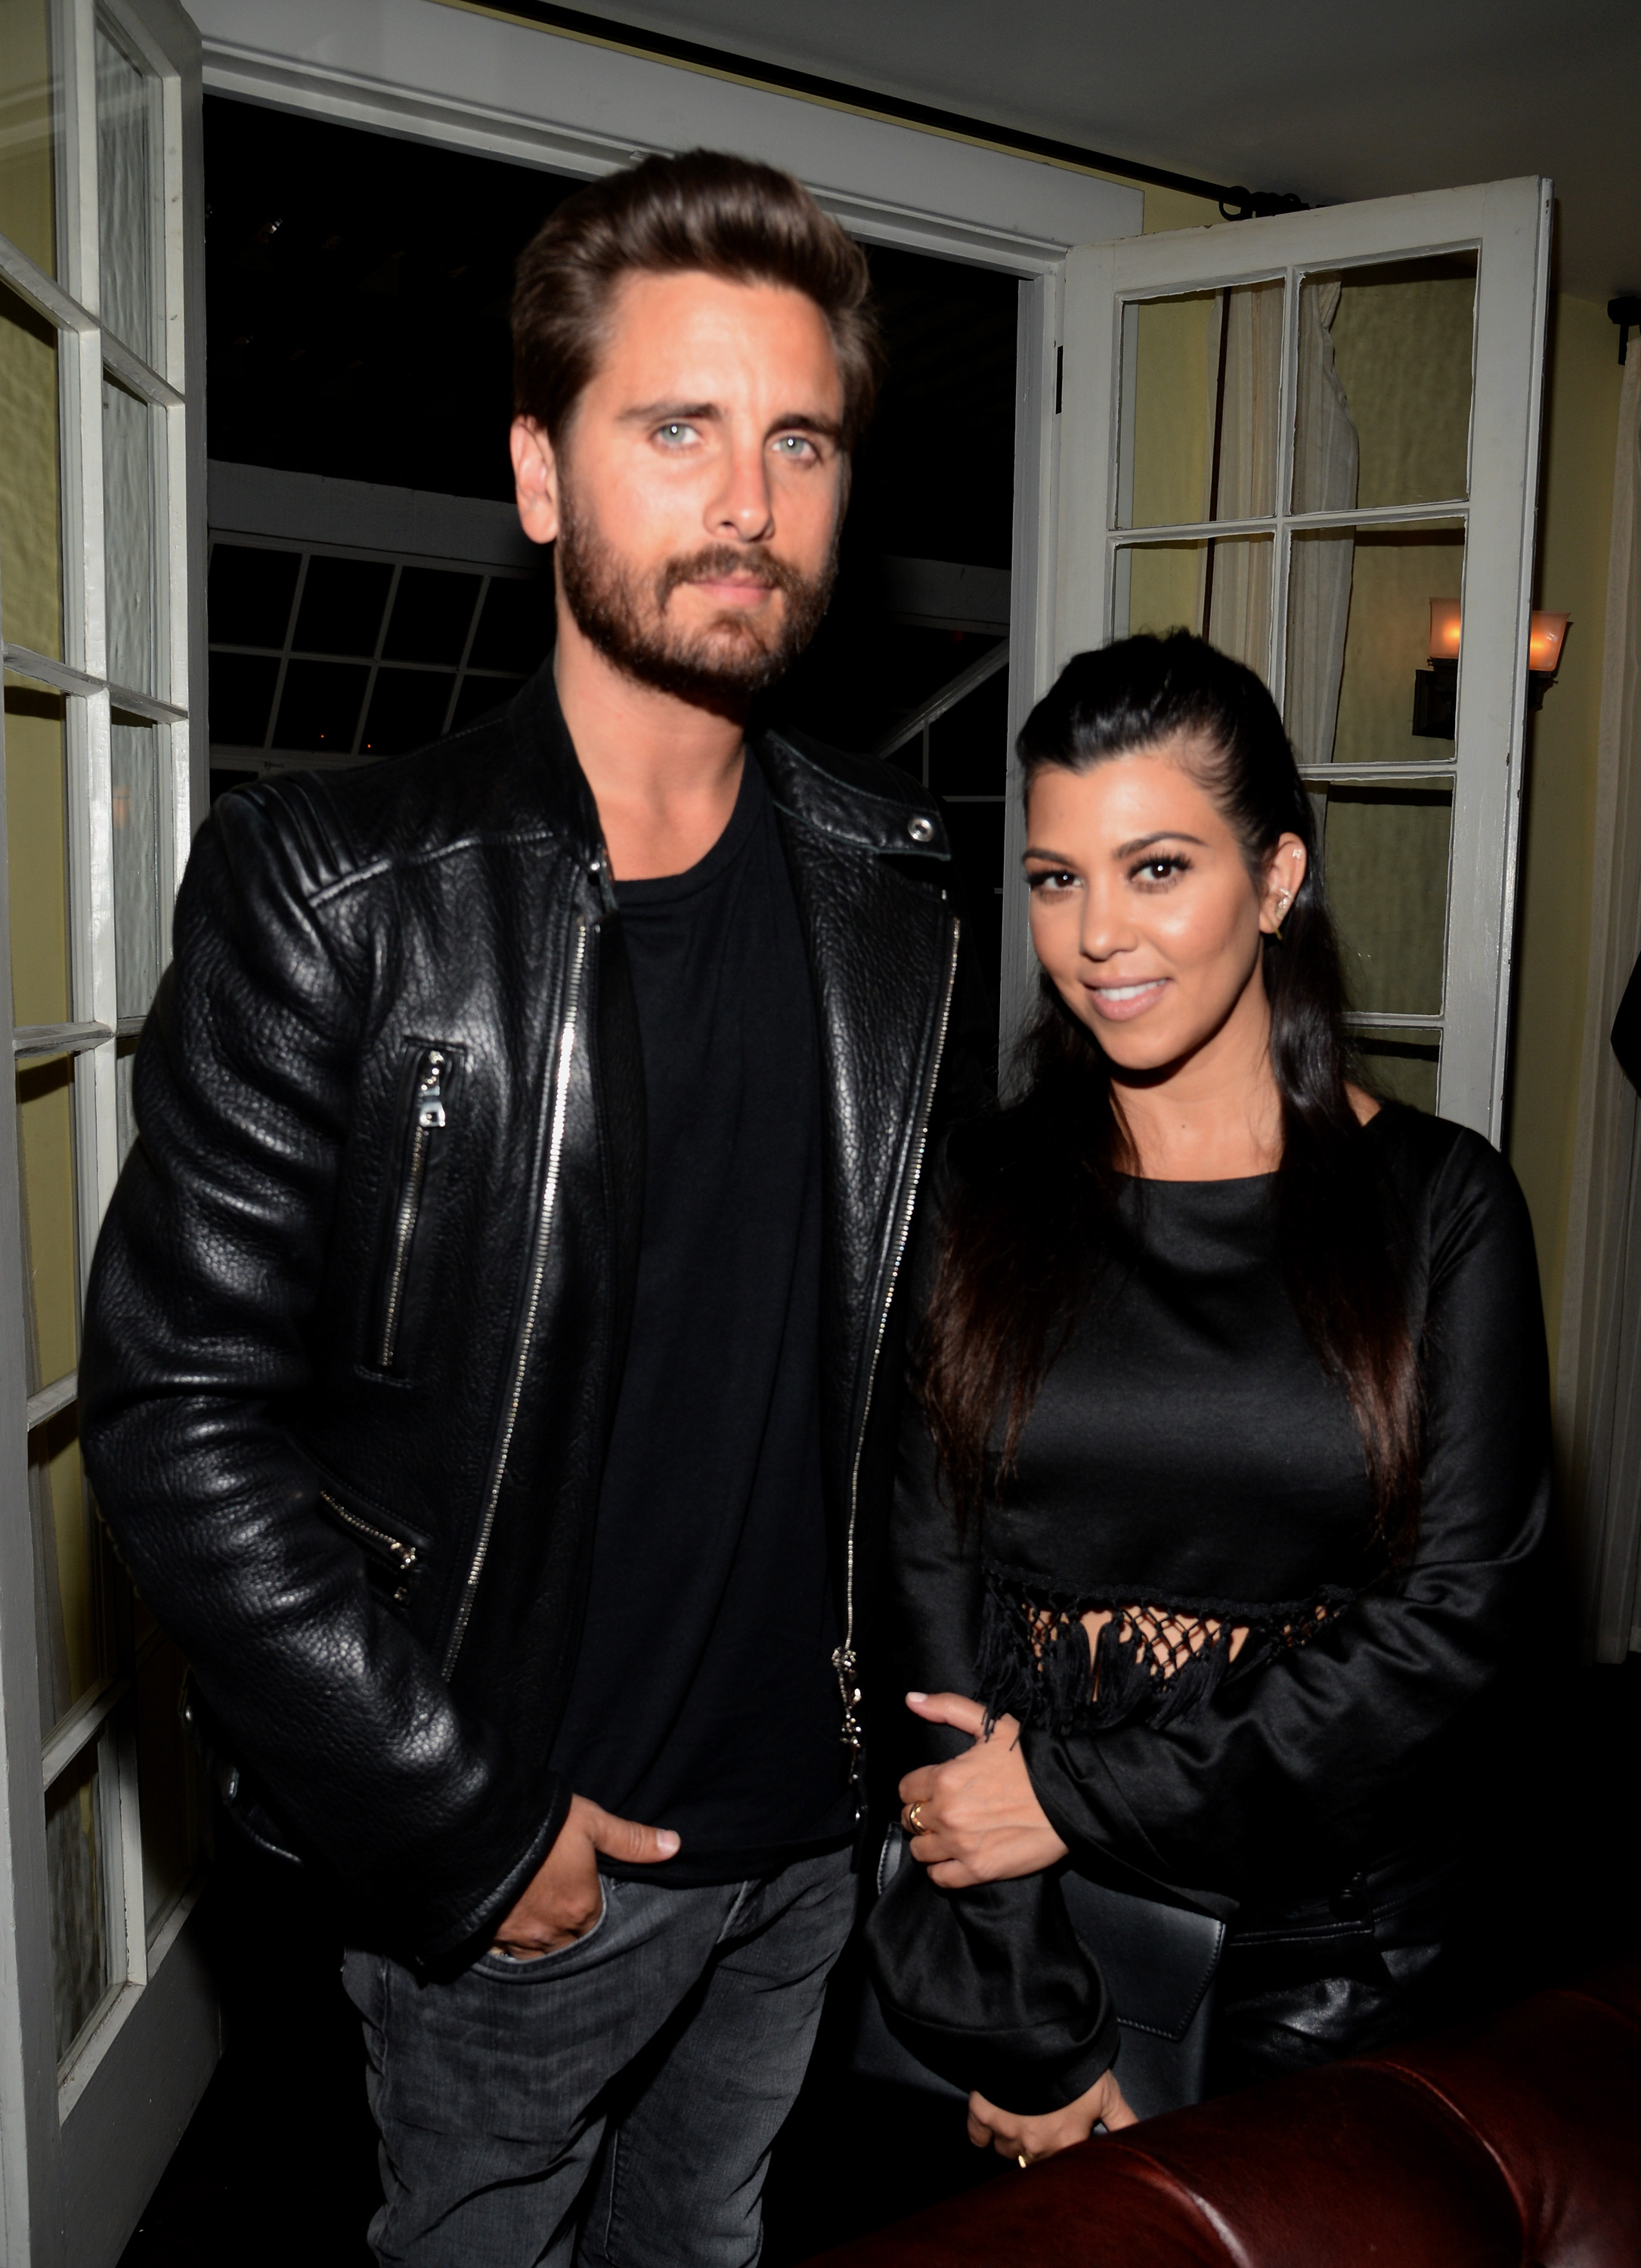 TV personalities Scott Disick (L) and Kourtney Kardashian attend Opening Ceremony and Calvin Klein Jeans' celebration launch of the #mycalvins Denim Series with special guest Kendall Jenner at Chateau Marmont on April 23, 2015 in Los Angeles, California.